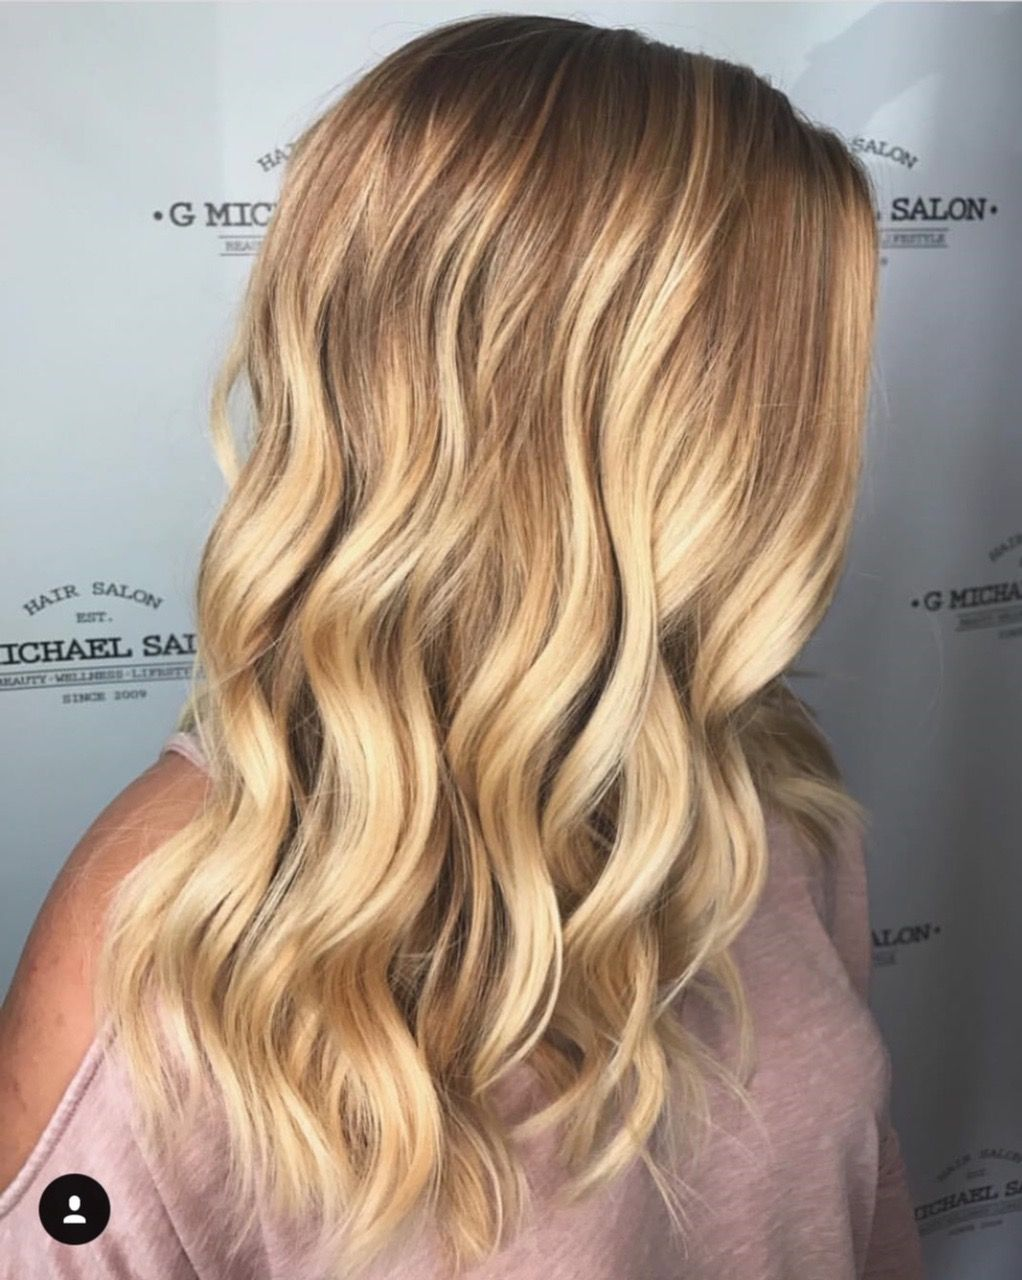 Warm Waves By The Design Team At G Michael Salon Indy S Premier Oribe Salon Indy Indyhair Carmel Best Hair Salon Cool Hairstyles Hair Inspiration Color